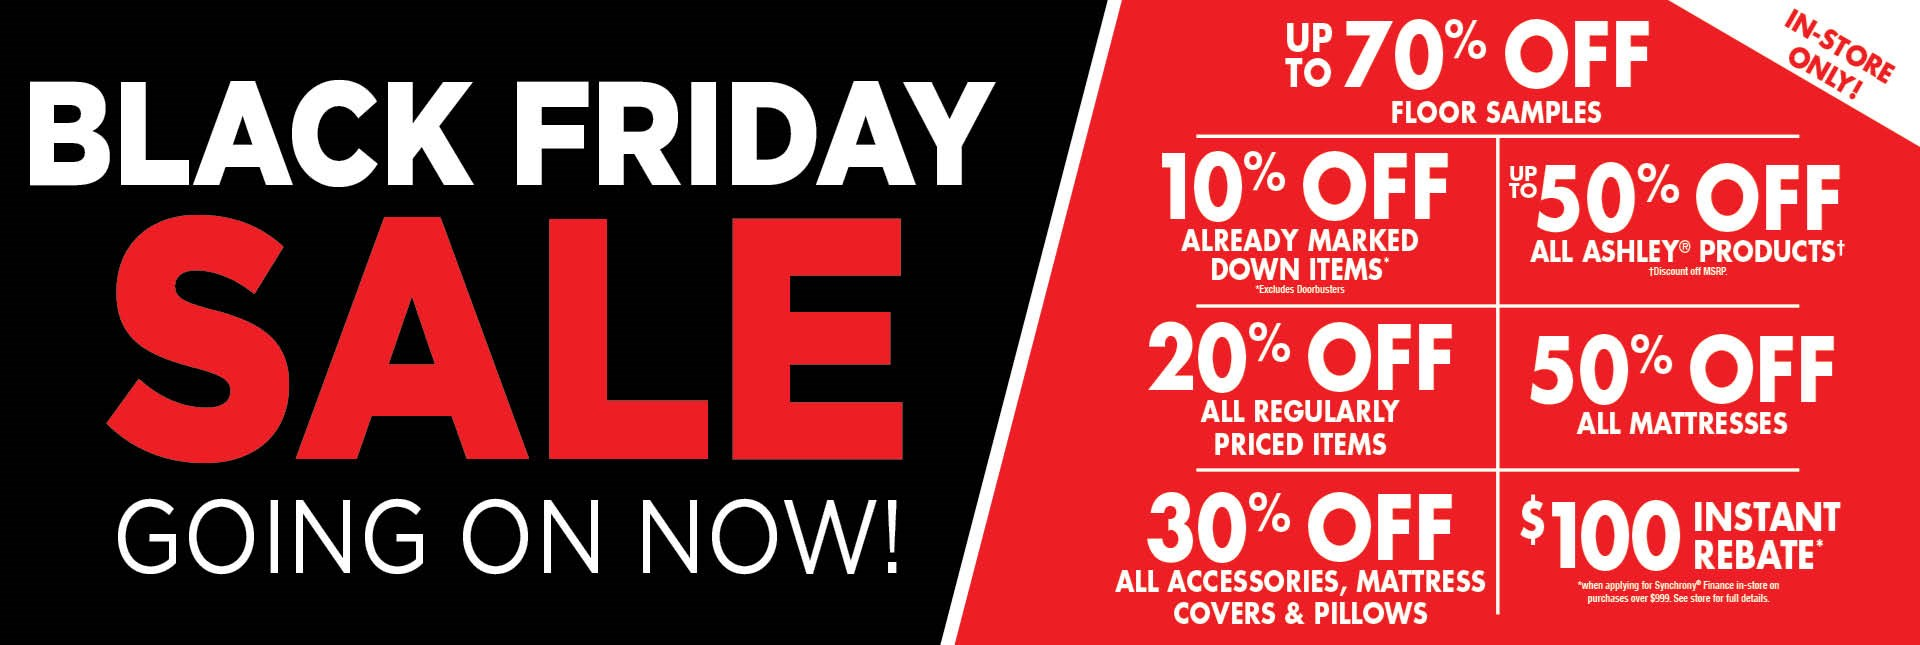 Black Friday Sale Going On Now